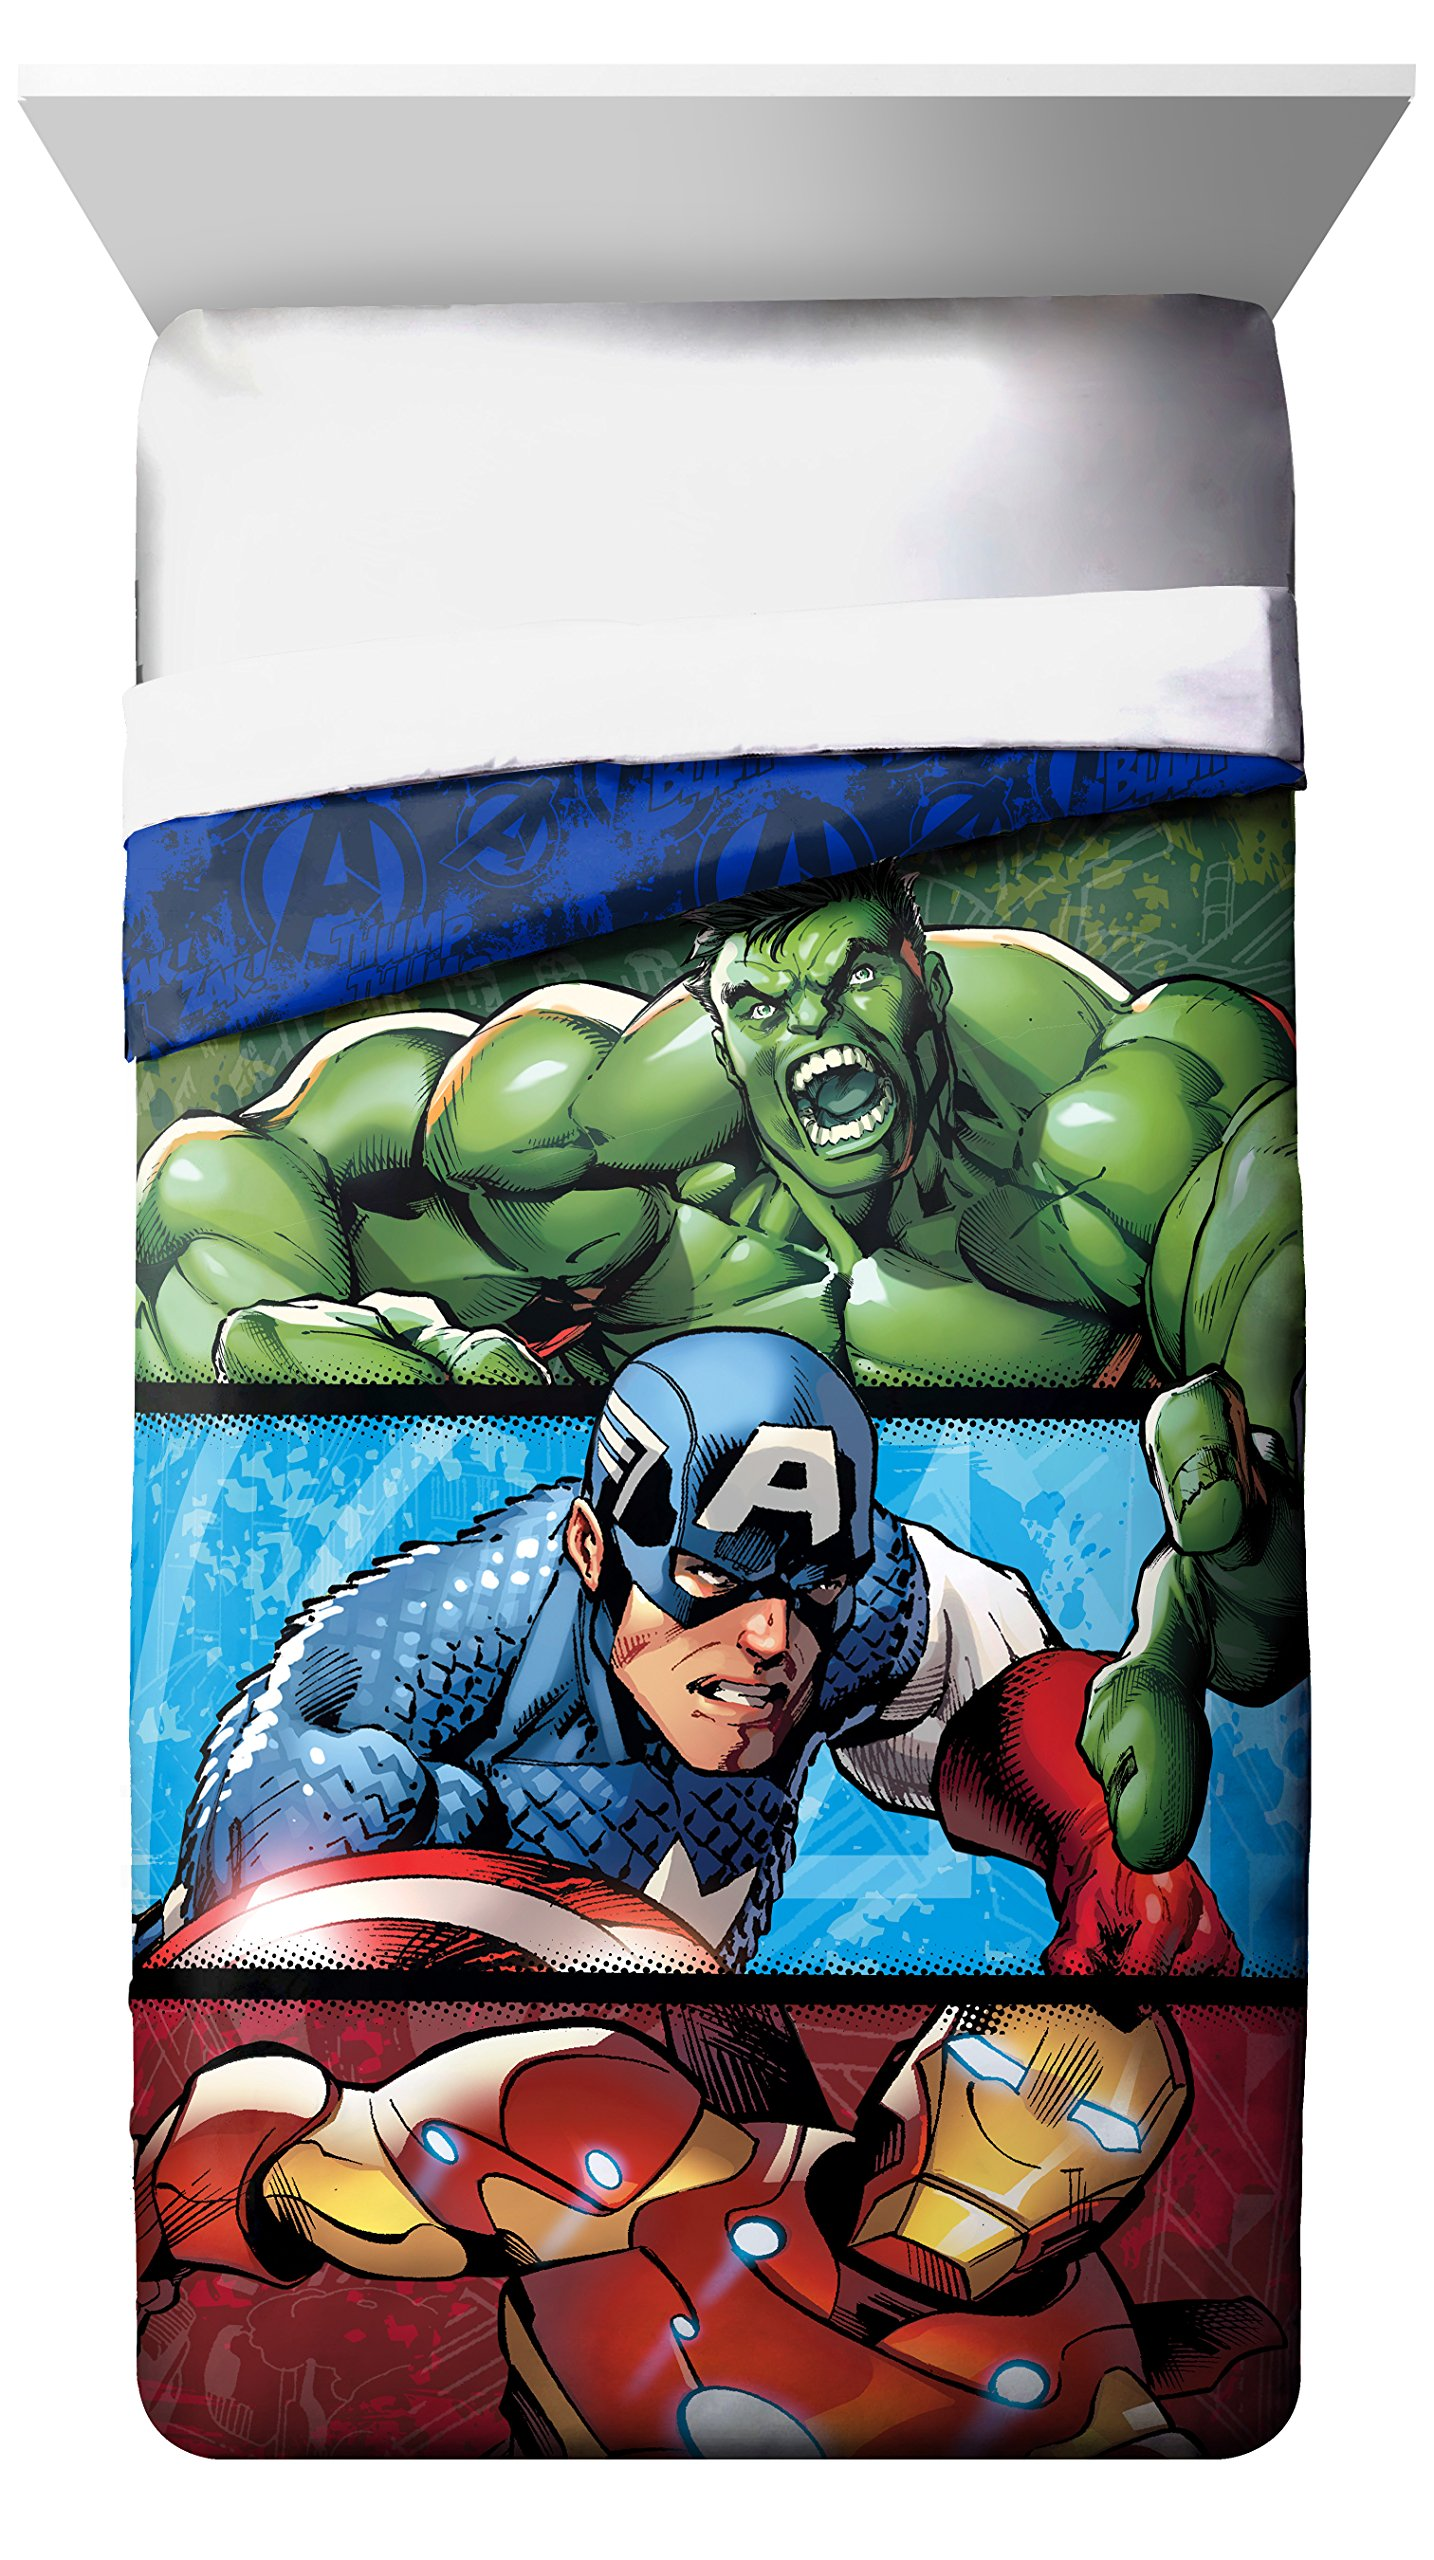 Disney Marvel Avengers Publish Twin Comforter - Super Soft Kids Reversible Bedding features Hulk, Iron Man, and Captain America - Fade Resistant Polyester Microfiber Fill (Official Marvel Product)